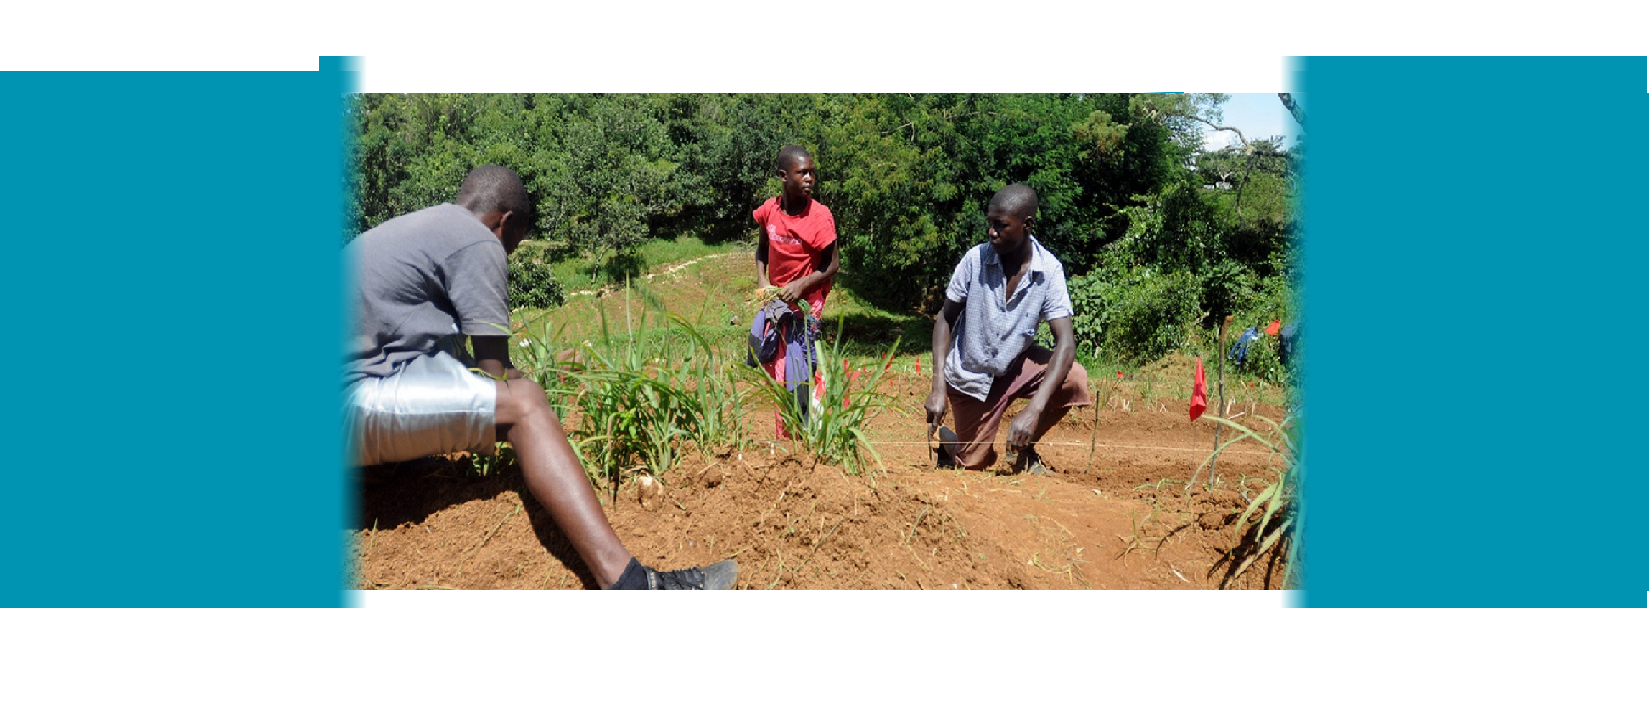 What Works - Youth and Agriculture, Food Security and